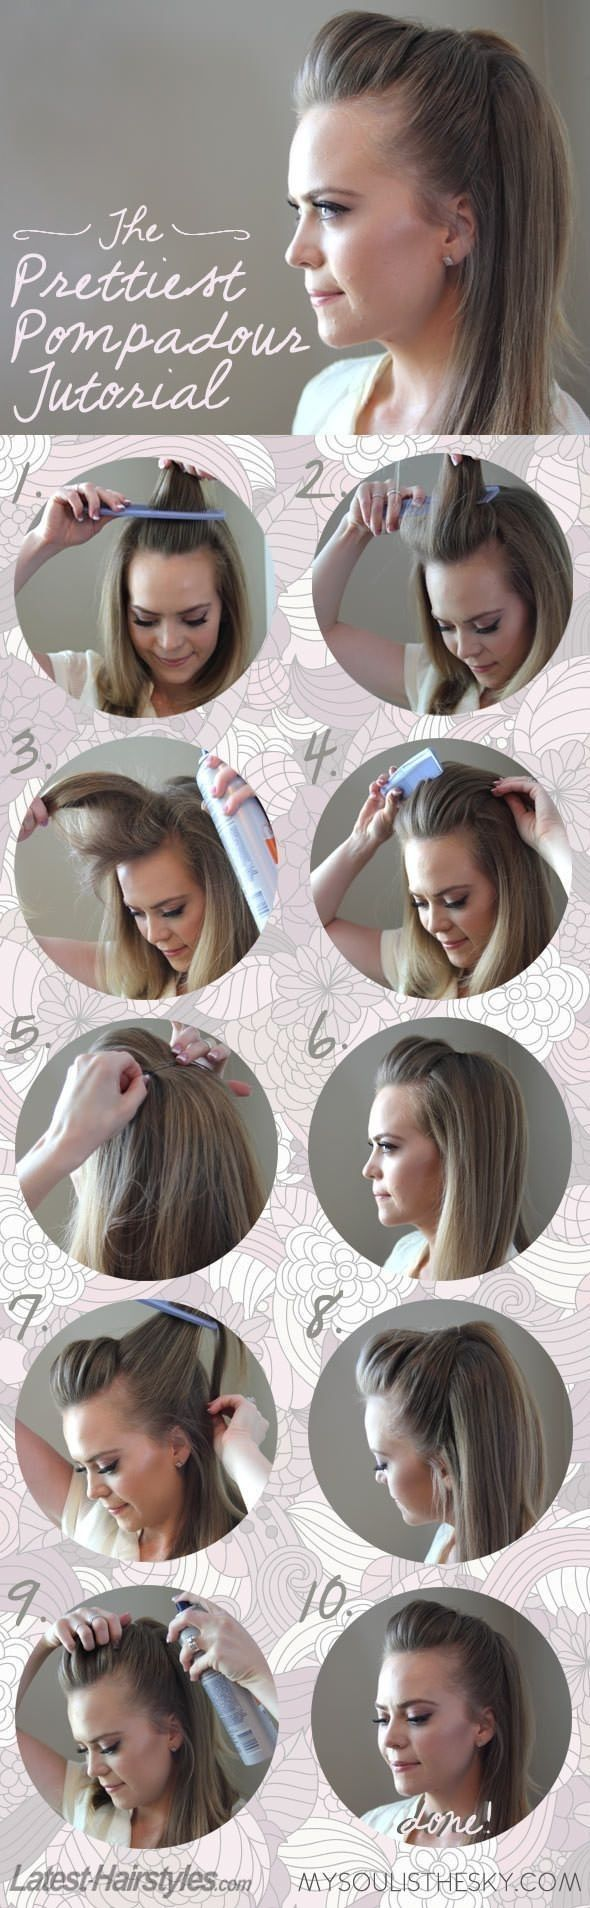 25 Stunning Hair Styles That You Can Do In Just 5 Minutes | StyleCraze